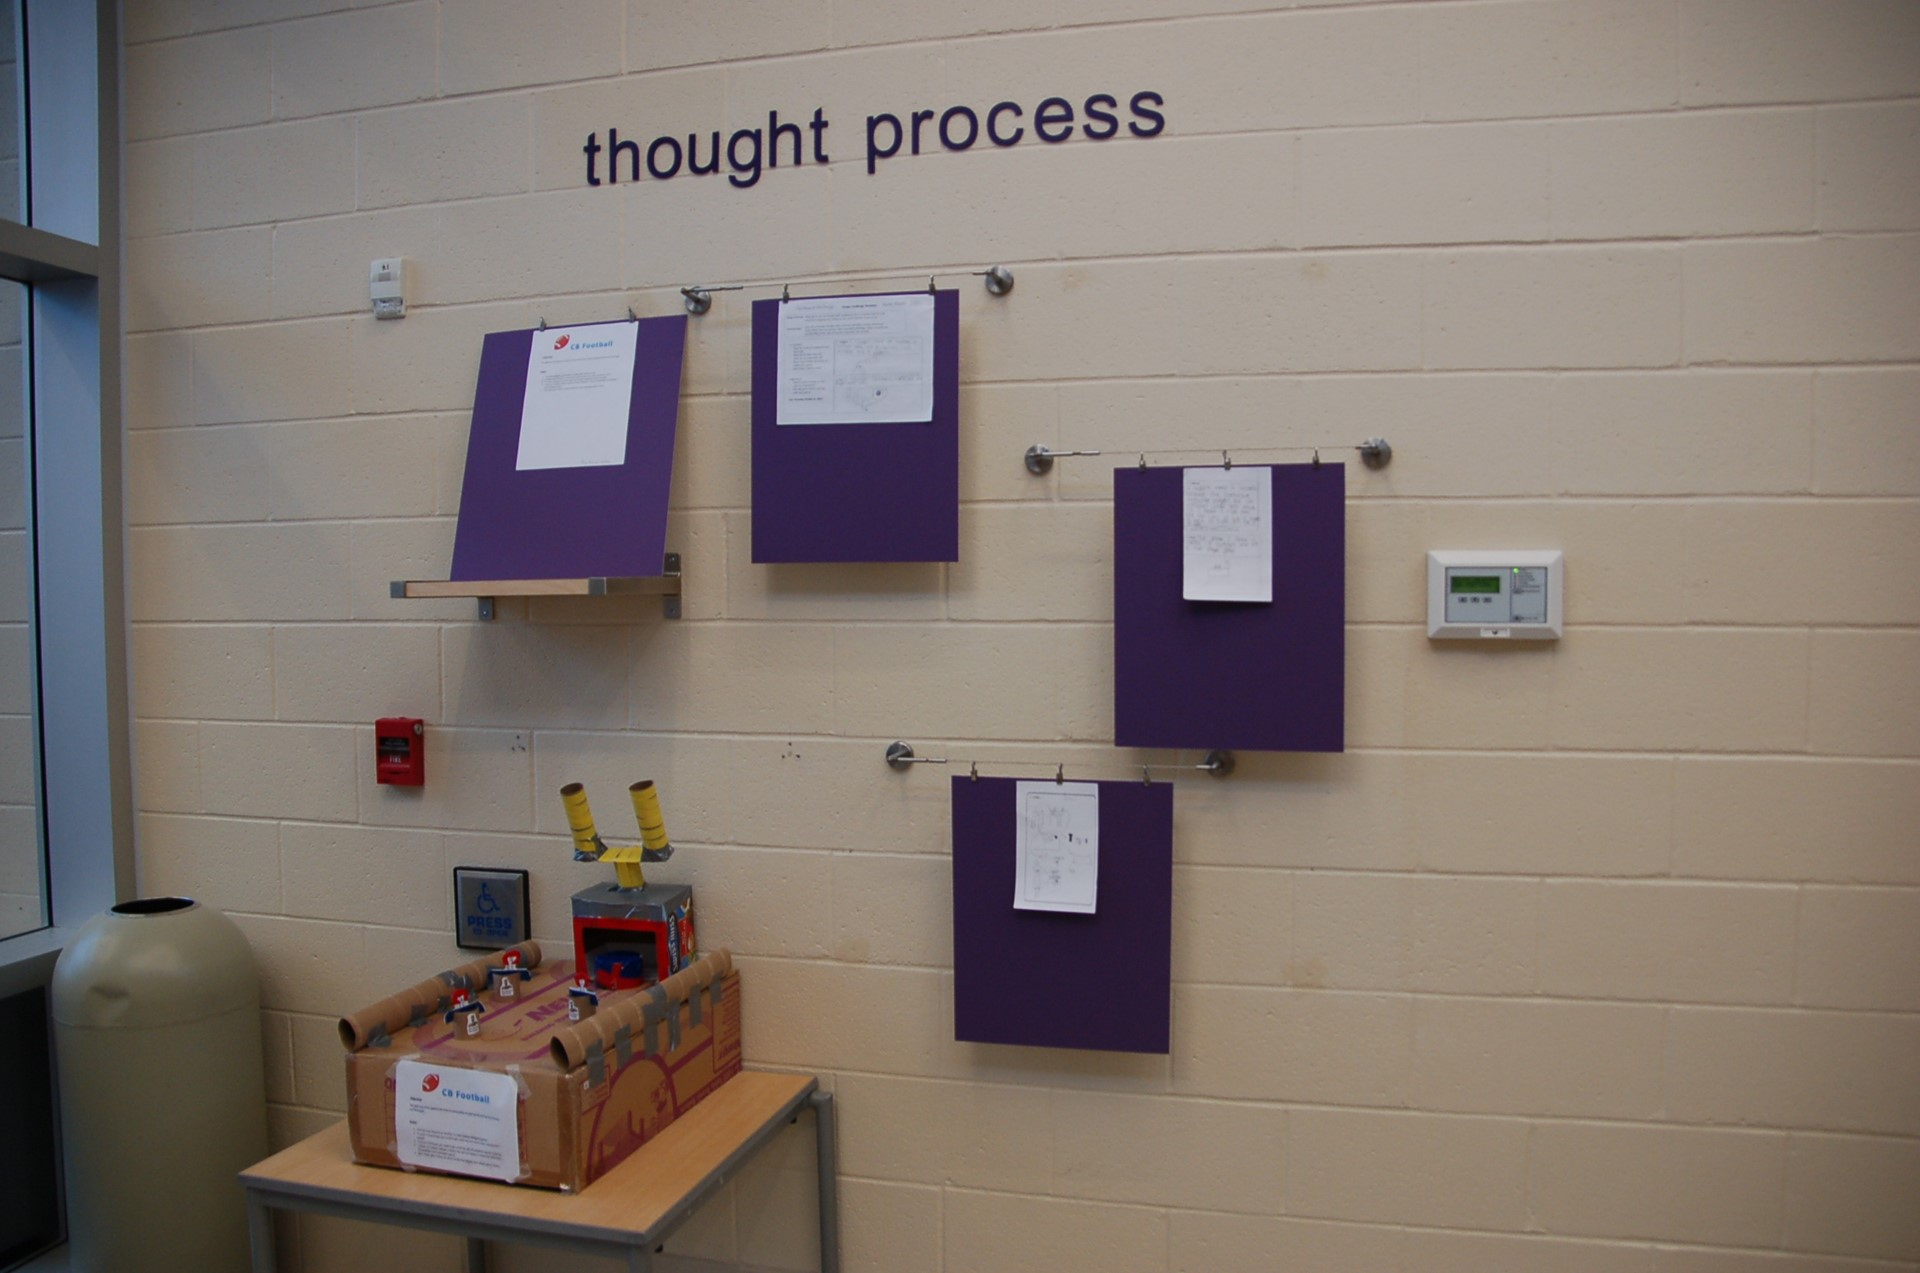 Principal's Gallery showing thought process in assignments.